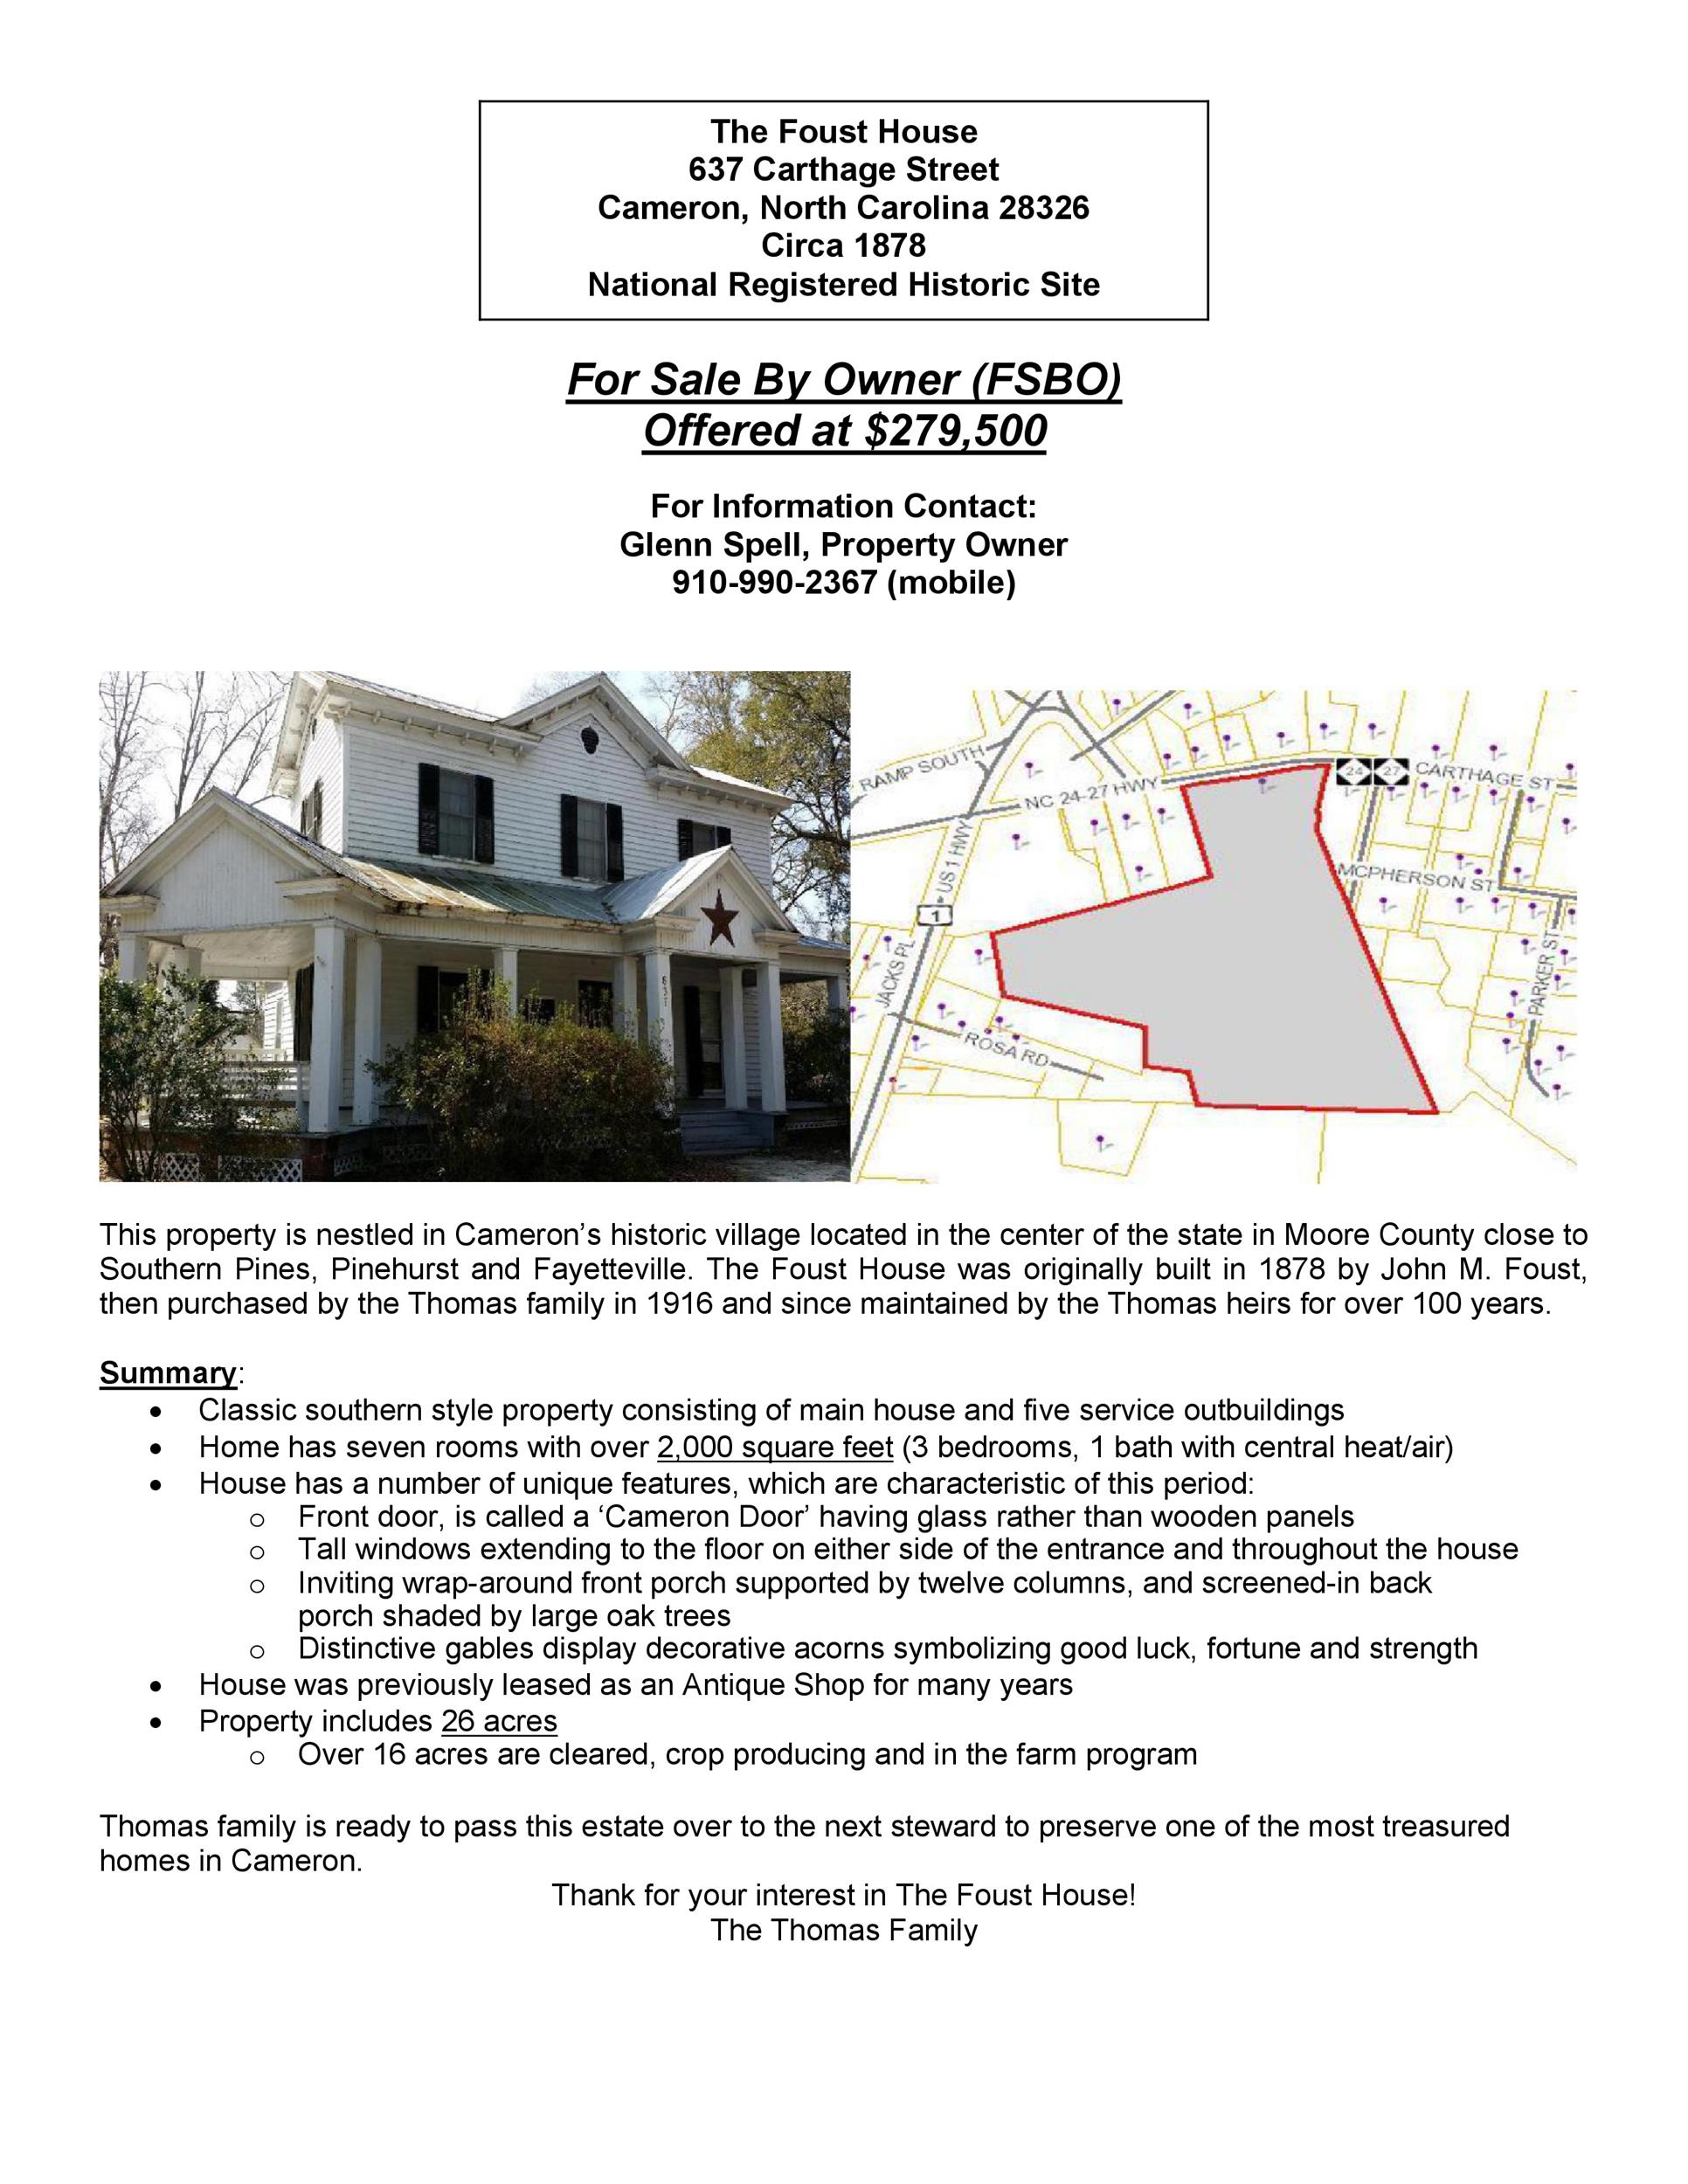 Free house for sale flyer 36